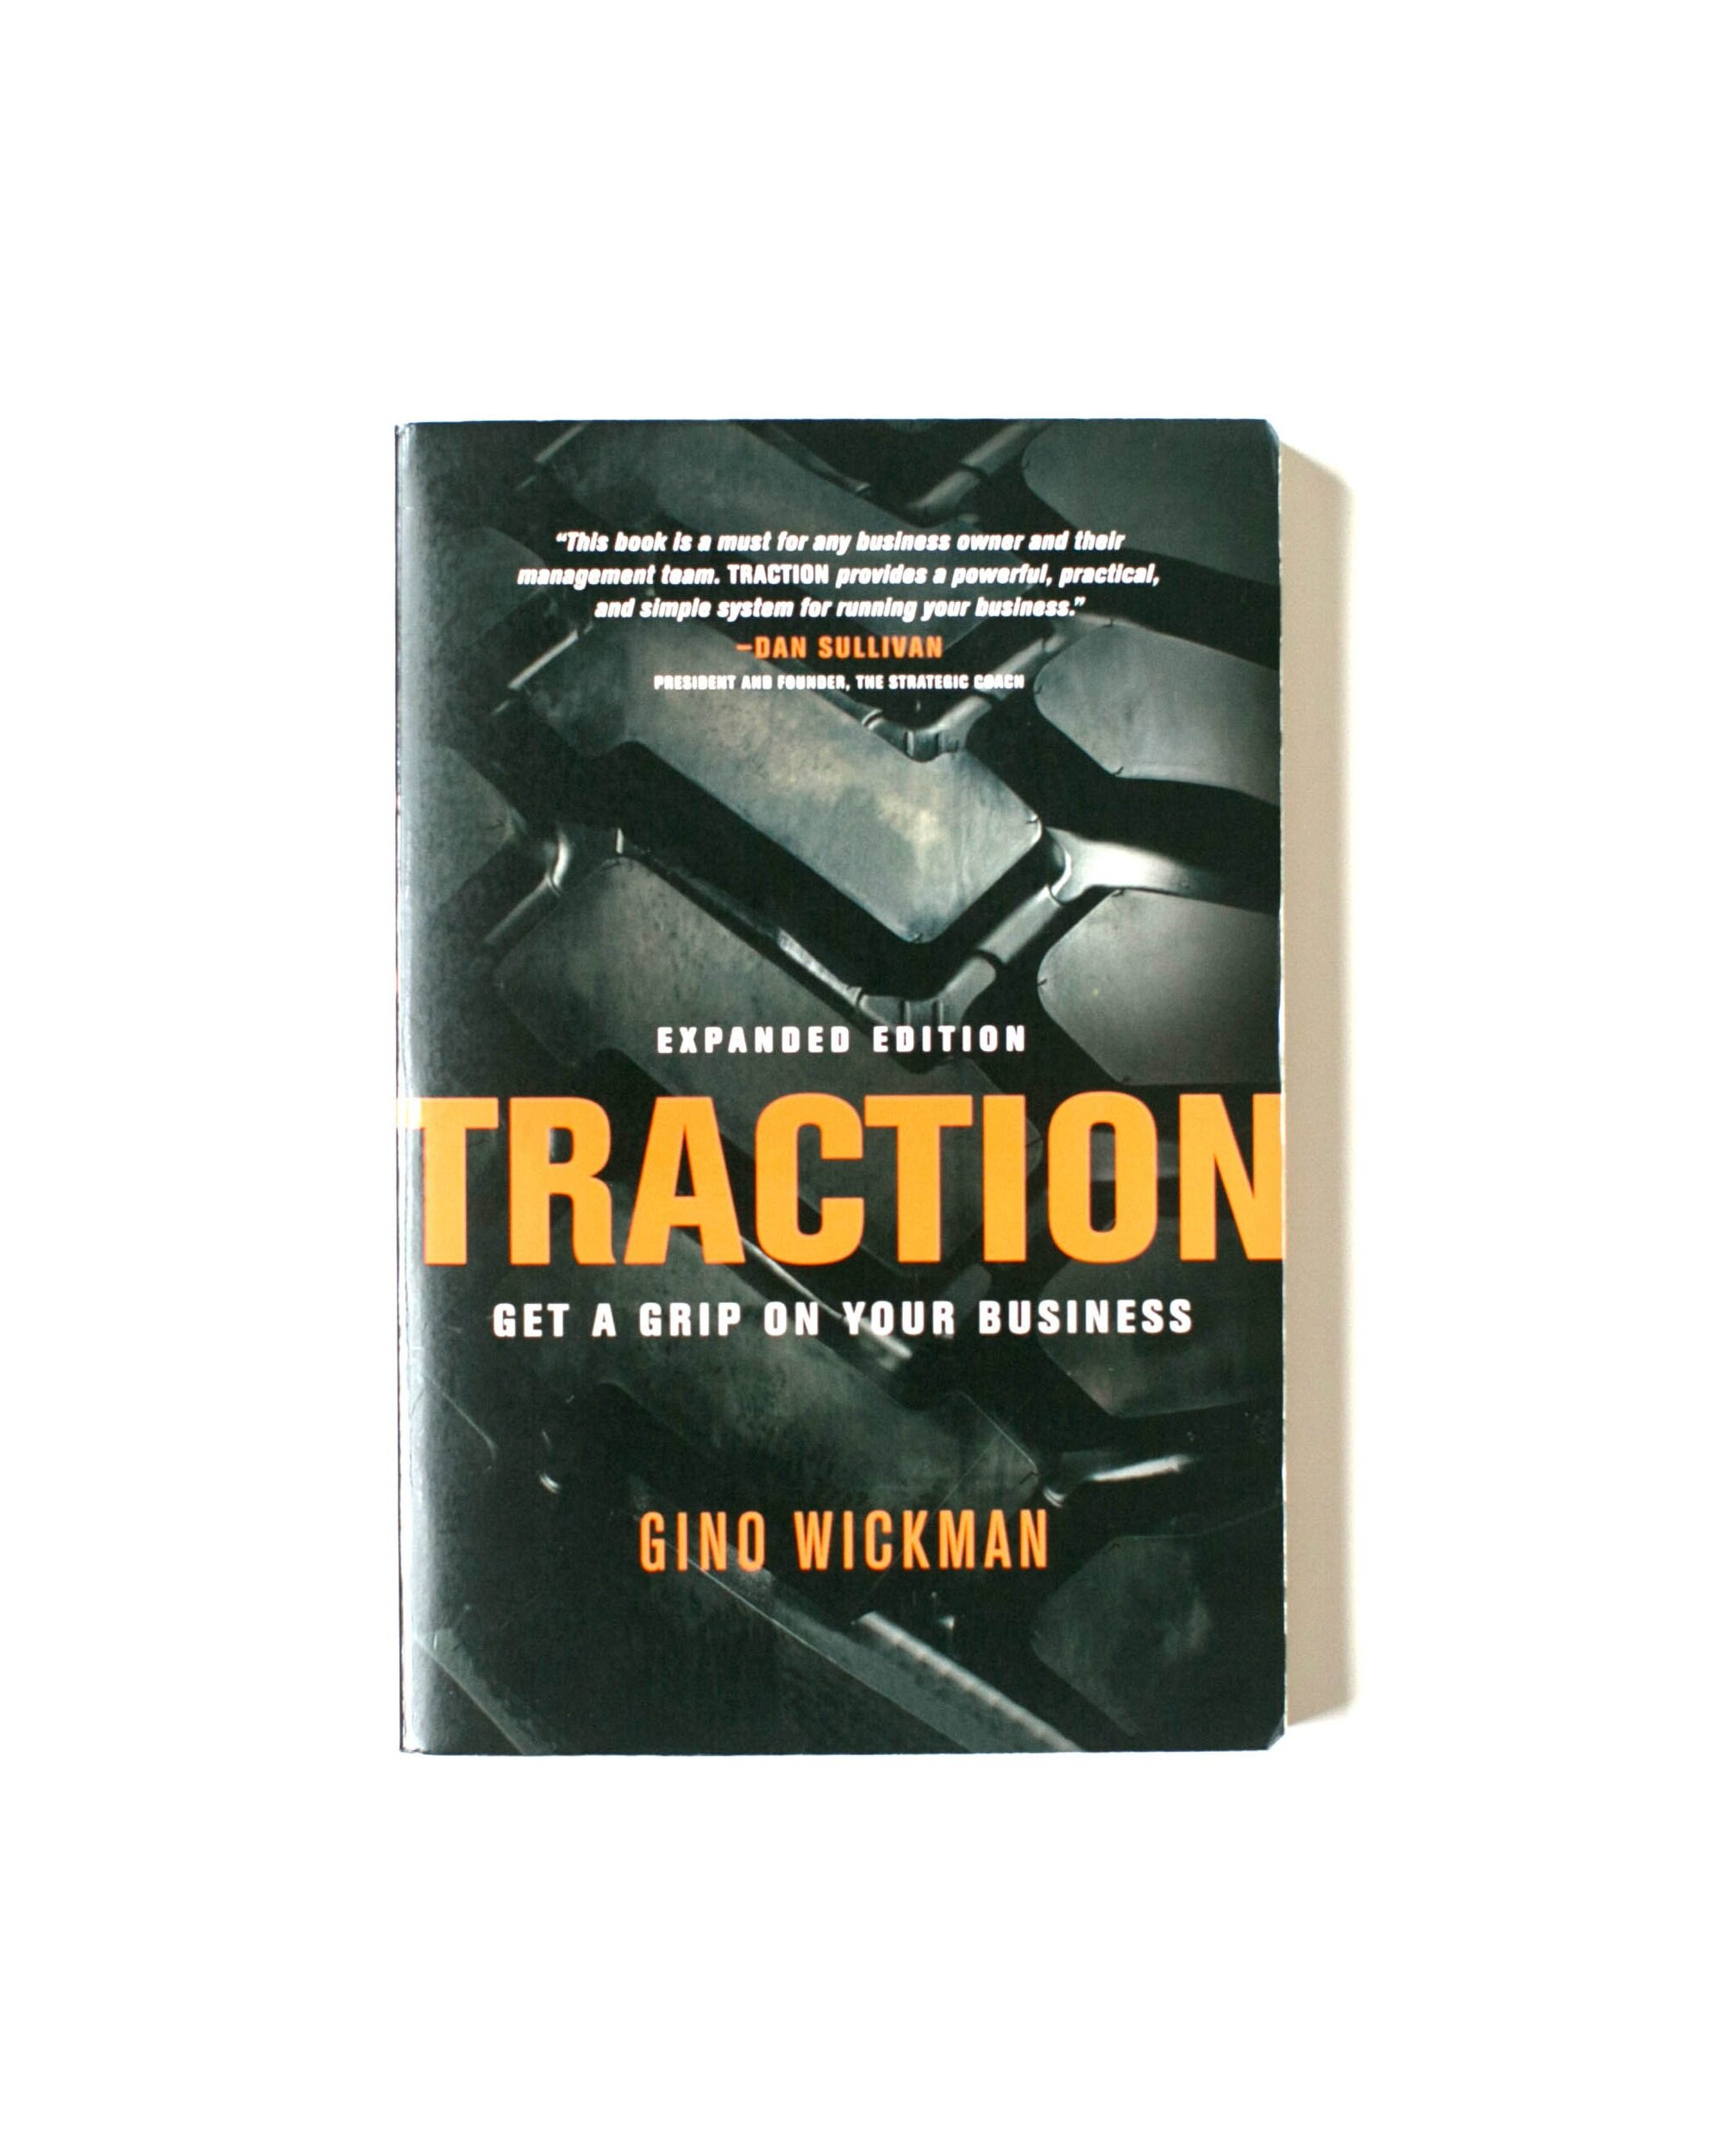 Traction Gino Wickman, Favorite Business Book